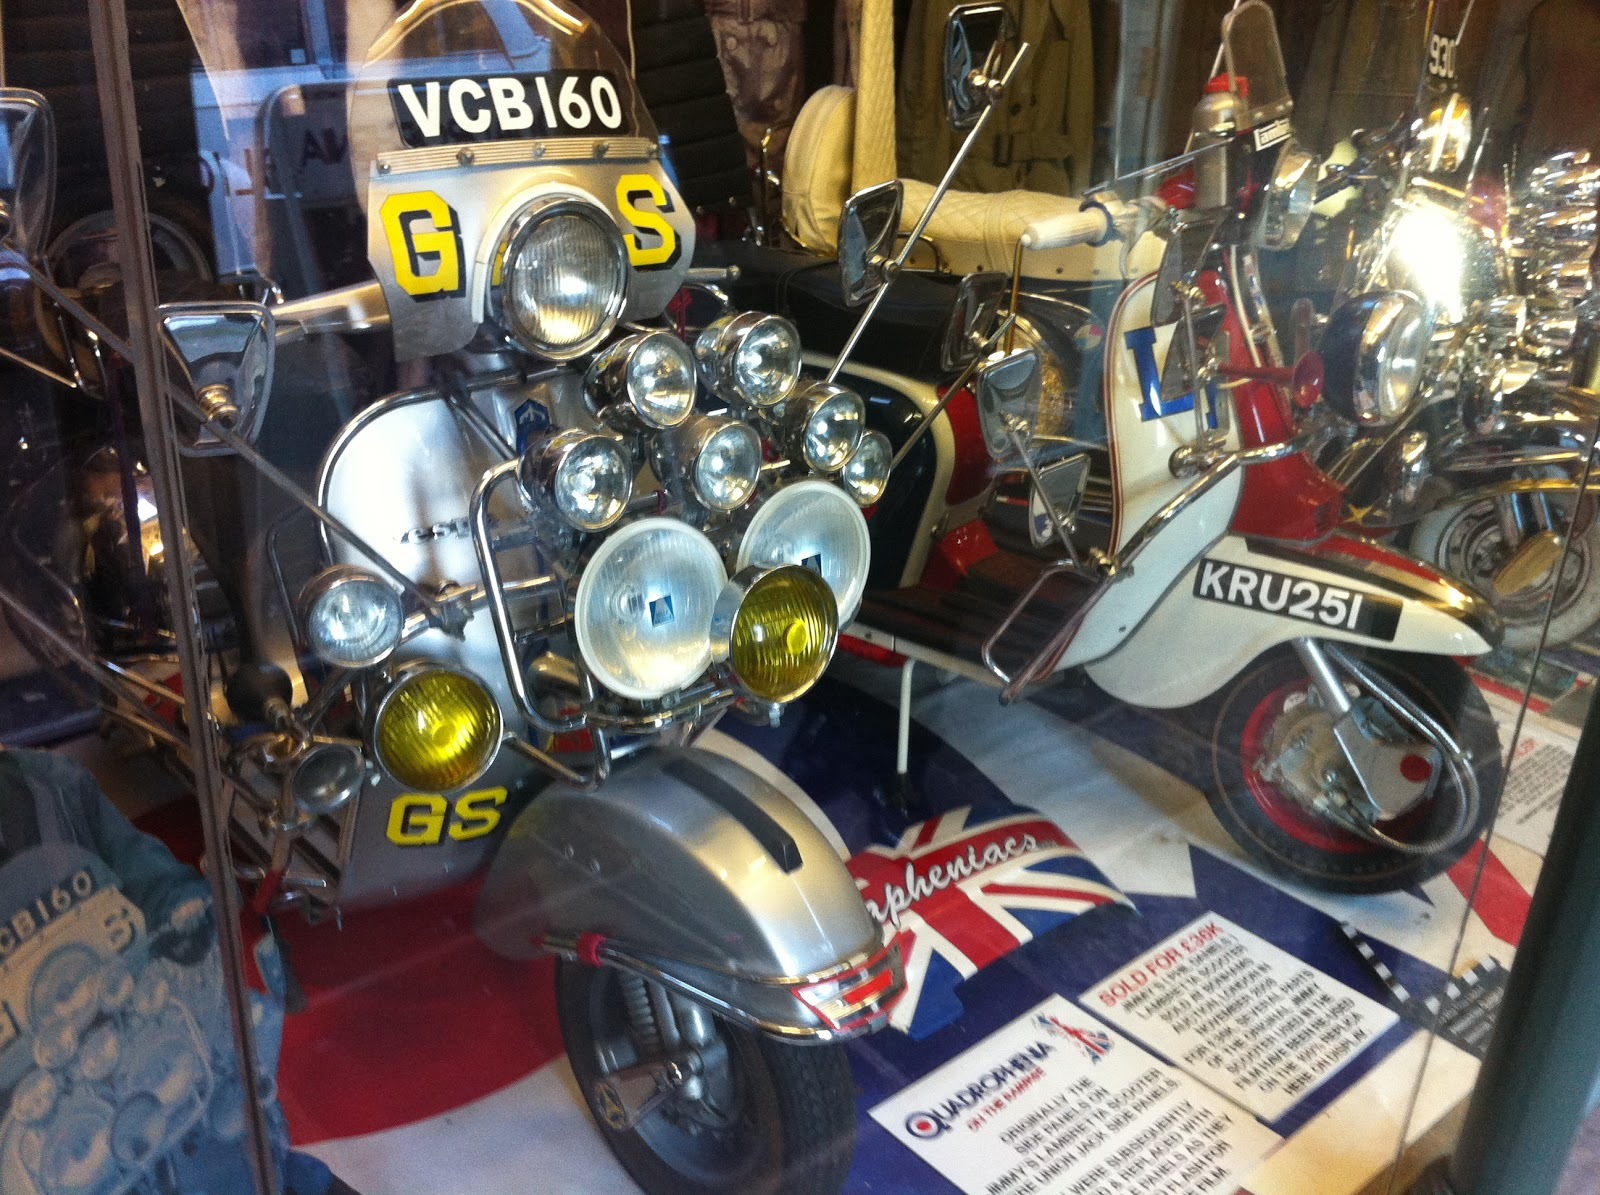 The Vintagent: 'QUADROPHENIA' SCOOTER SELLS FOR £36,000